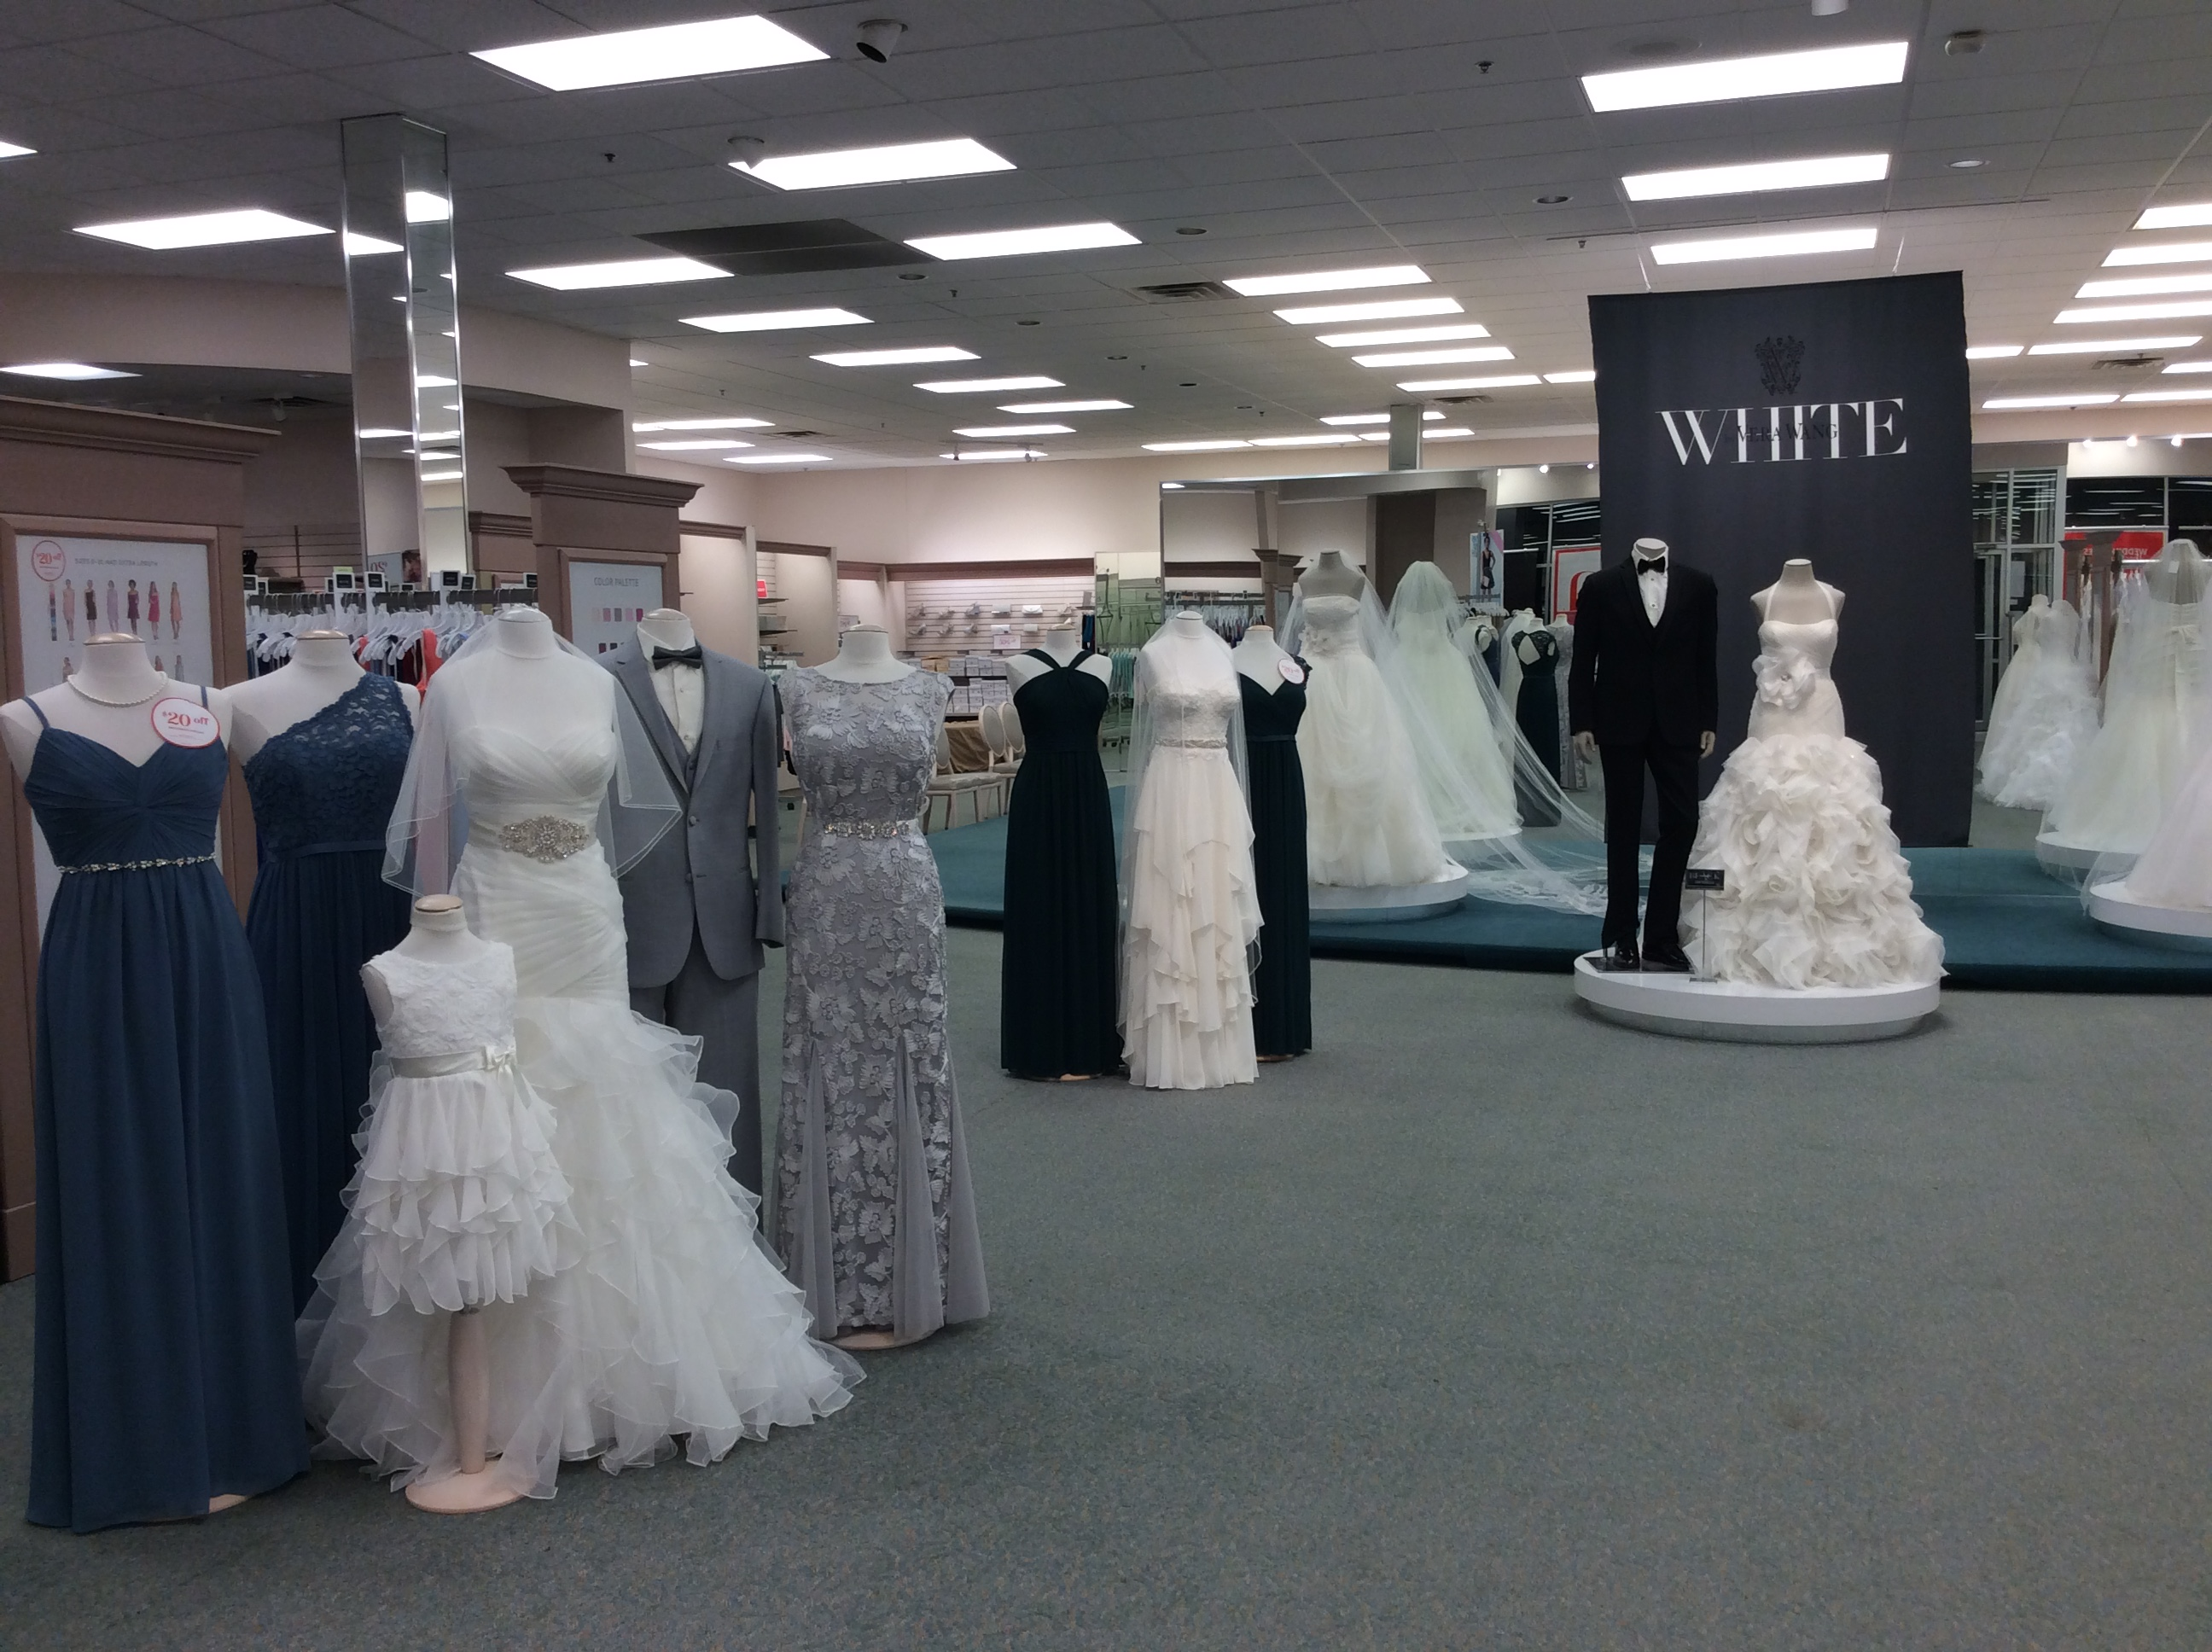 David S Bridal 3140 Soncy Road The Shops At Soncy Amarillo Tx